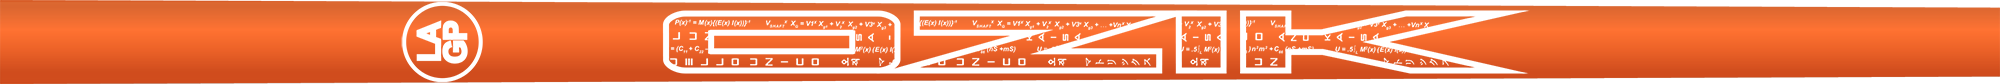 Ozik White Tie: Neon Orange White Satin - Wood 60 R